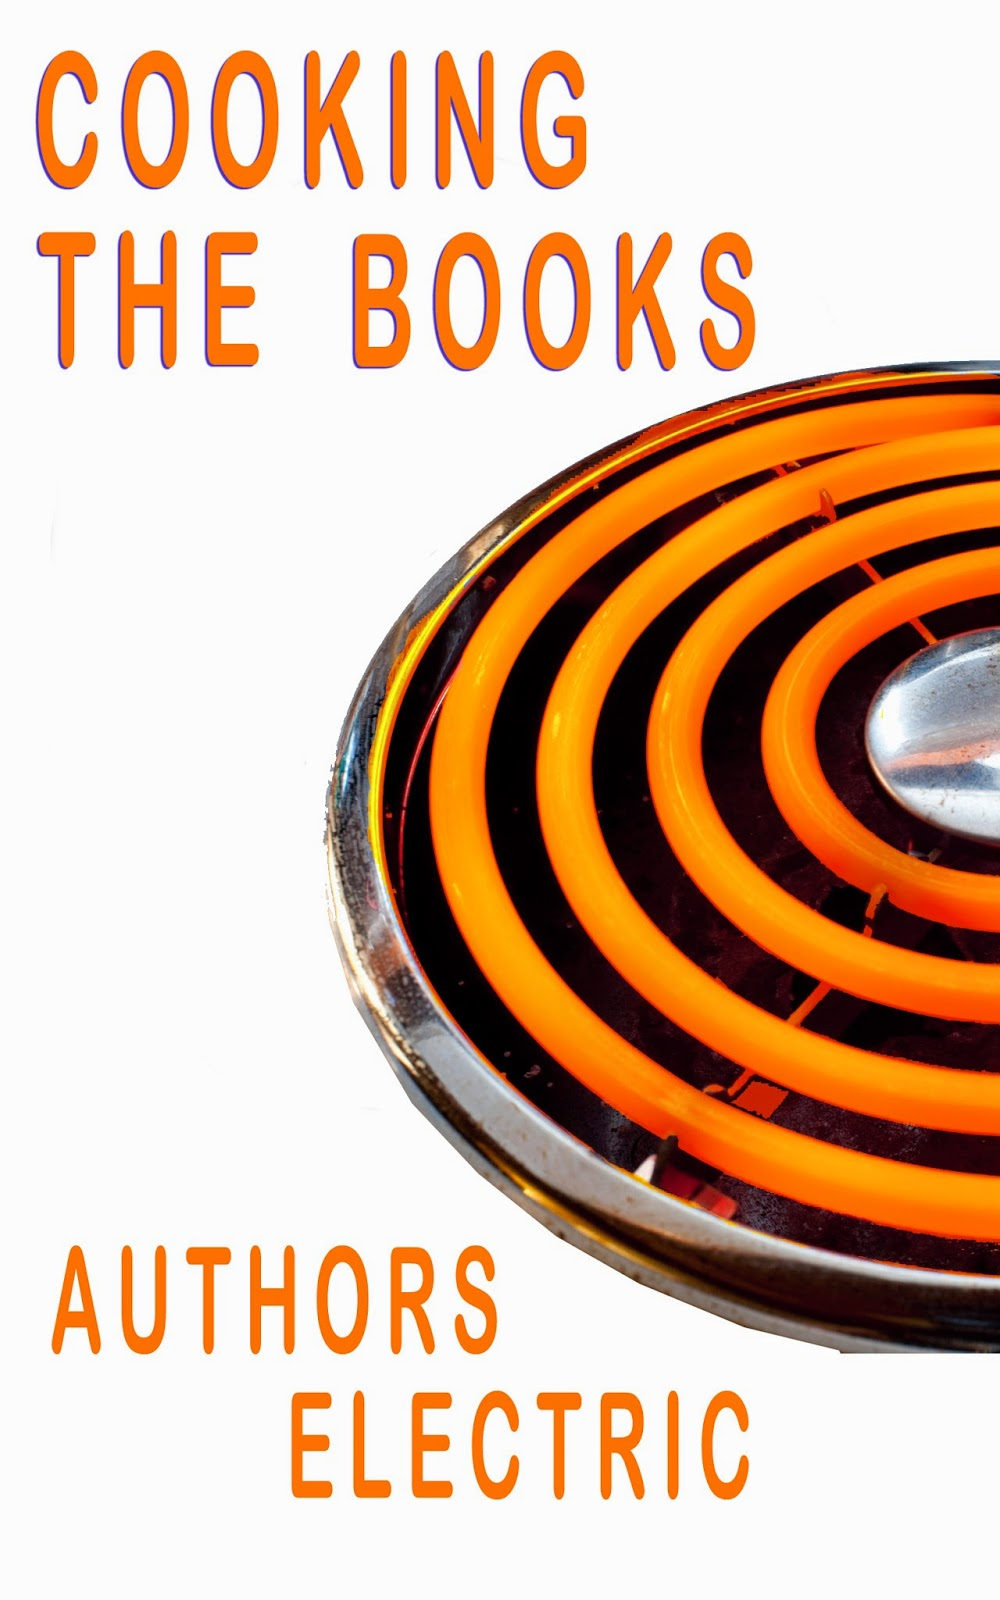 http://www.amazon.co.uk/Cooking-Books-Anthology-Authors-Electric-ebook/dp/B00J5RQ7OM